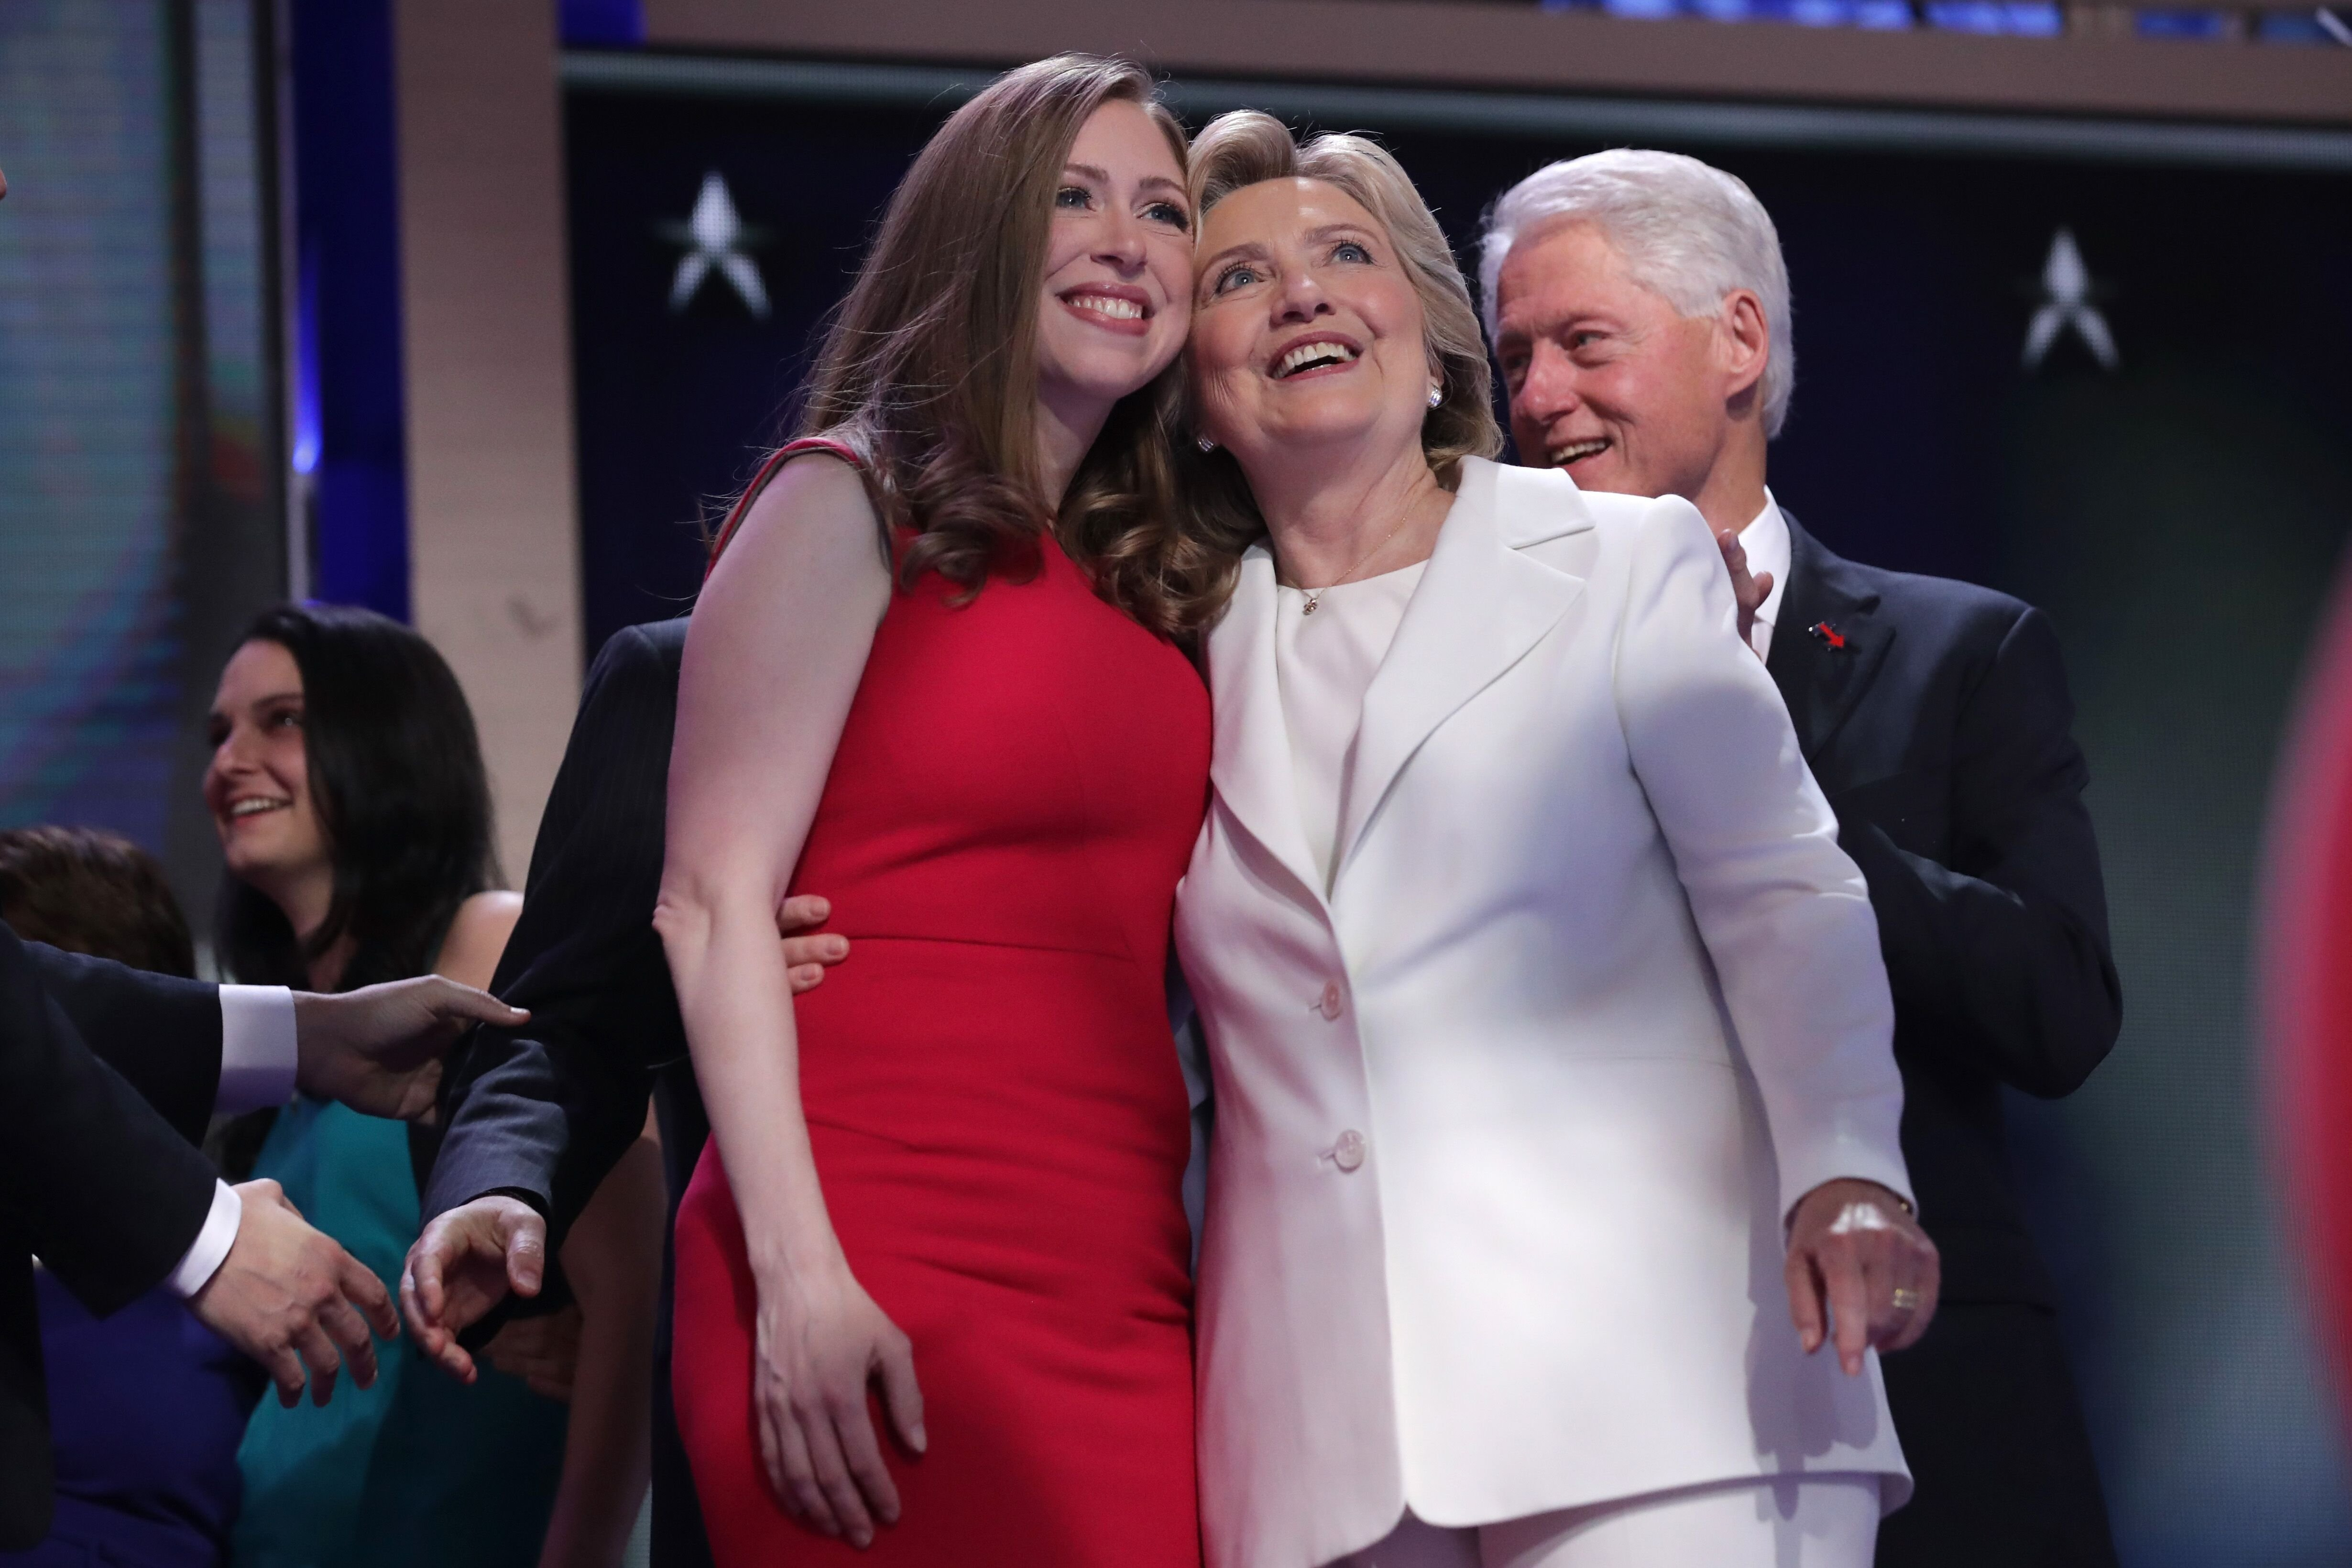 Hillary Clinton and Chelsea Clinton at the Democratic National Convention. | Source: Getty Images